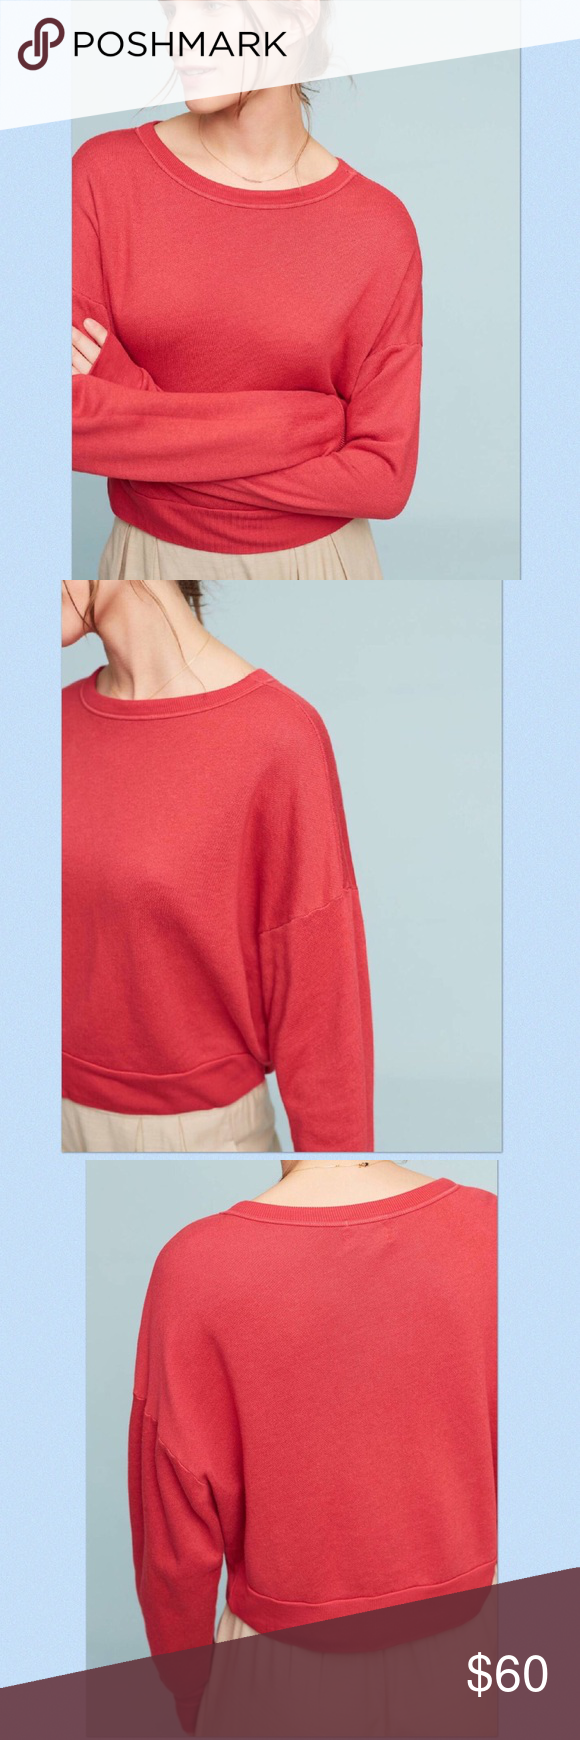 """NWT Anthropologie Studio Sweatshirt Supersoft sweatshirt by T.La for Anthropologie in Red.  Cotton, rayon, spandex; contrast stitching.  Pullover styling.  Approx 22"""" length.  Available in other colors! Anthropologie Tops Sweatshirts & Hoodies"""